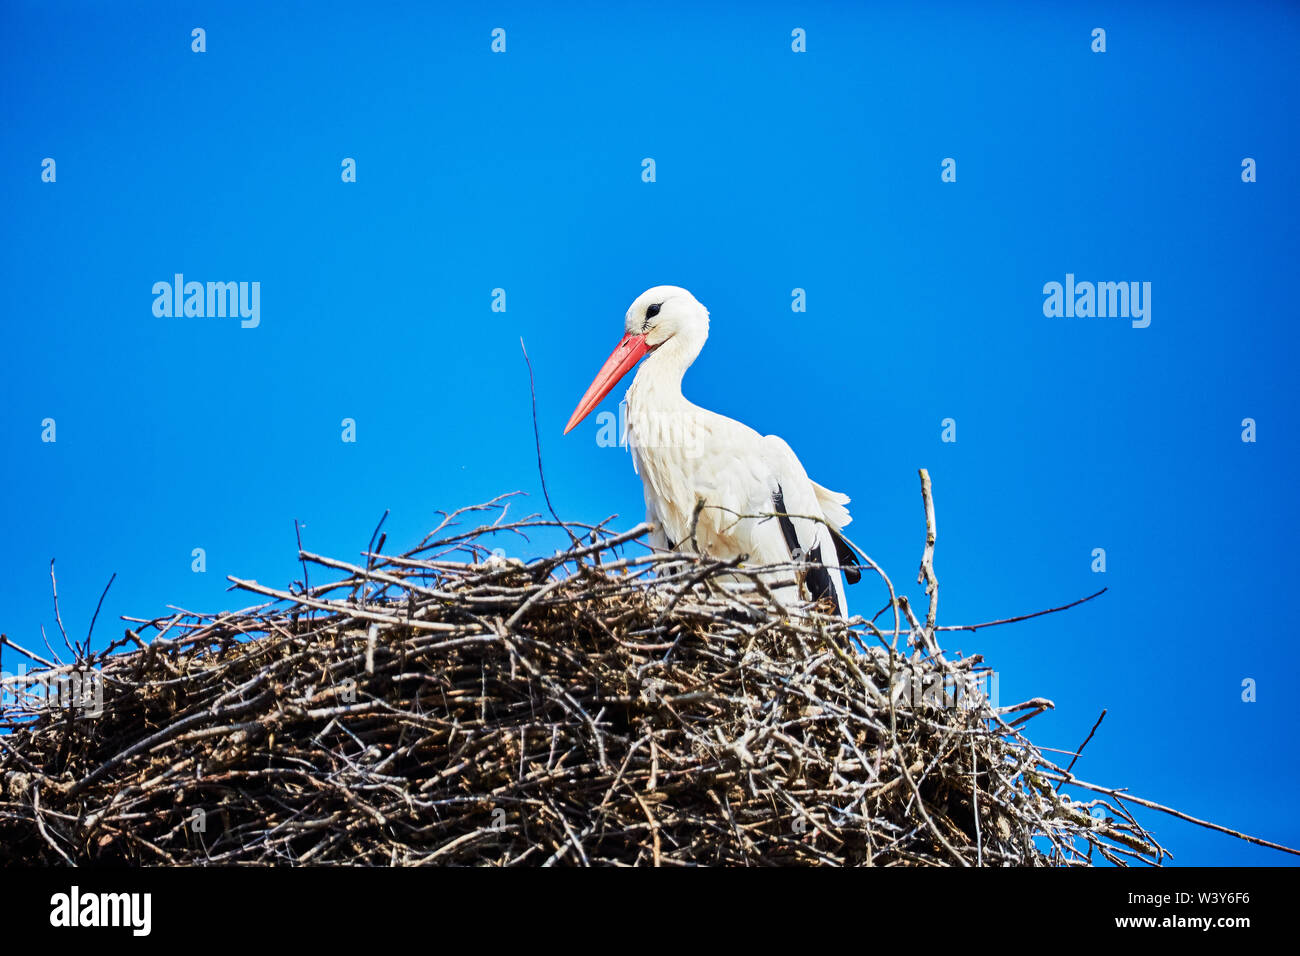 A stork in its nest - Stock Image